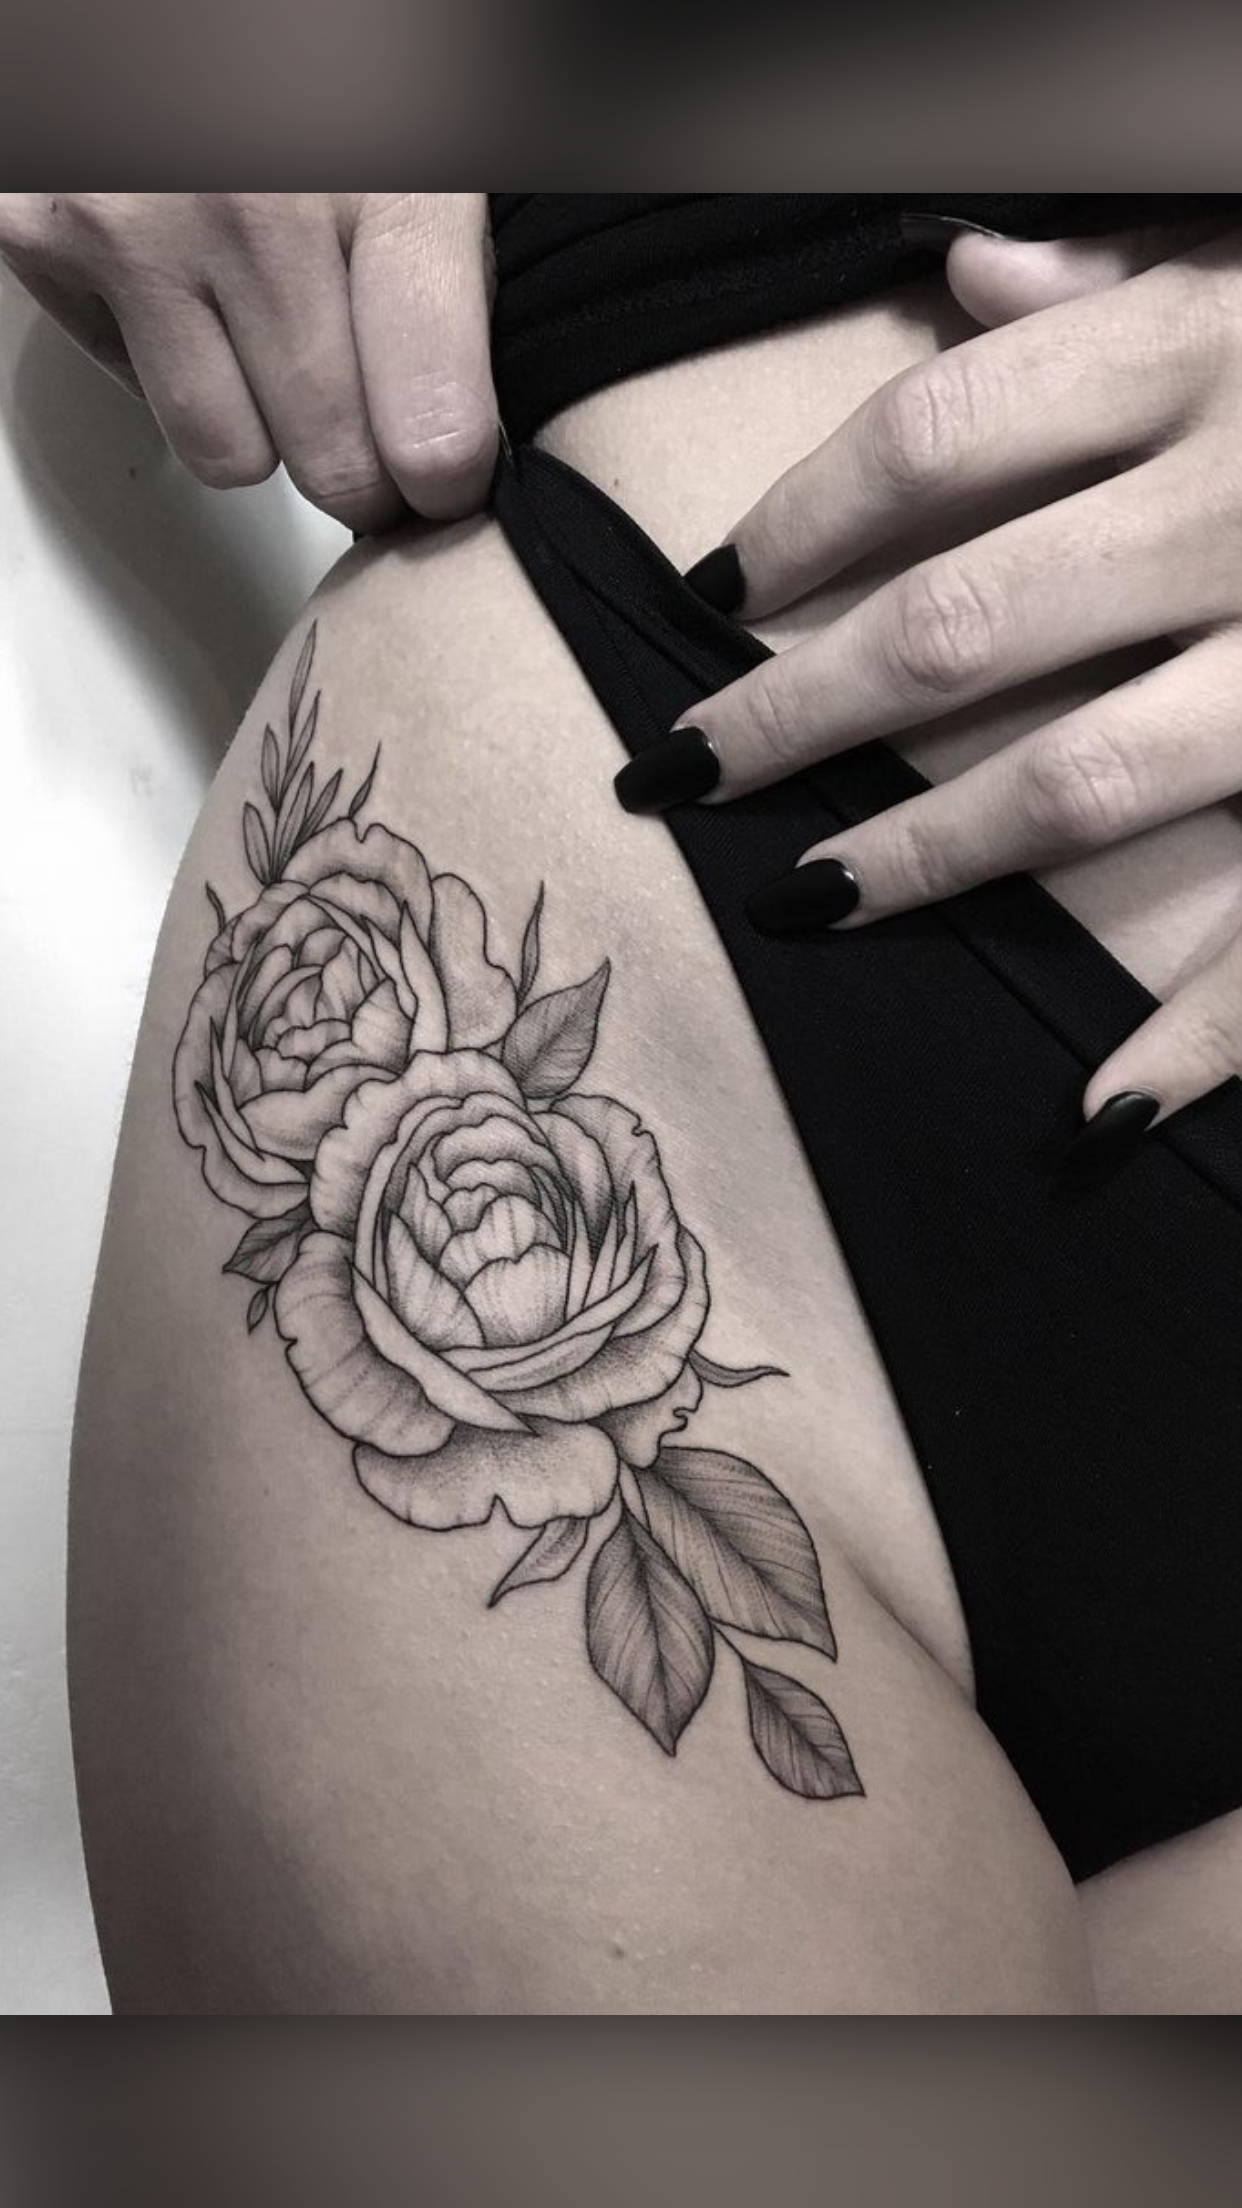 Pin By H On Tattoo Ideas In 2020 Hip Thigh Tattoos Hip Tattoos Women Floral Thigh Tattoos